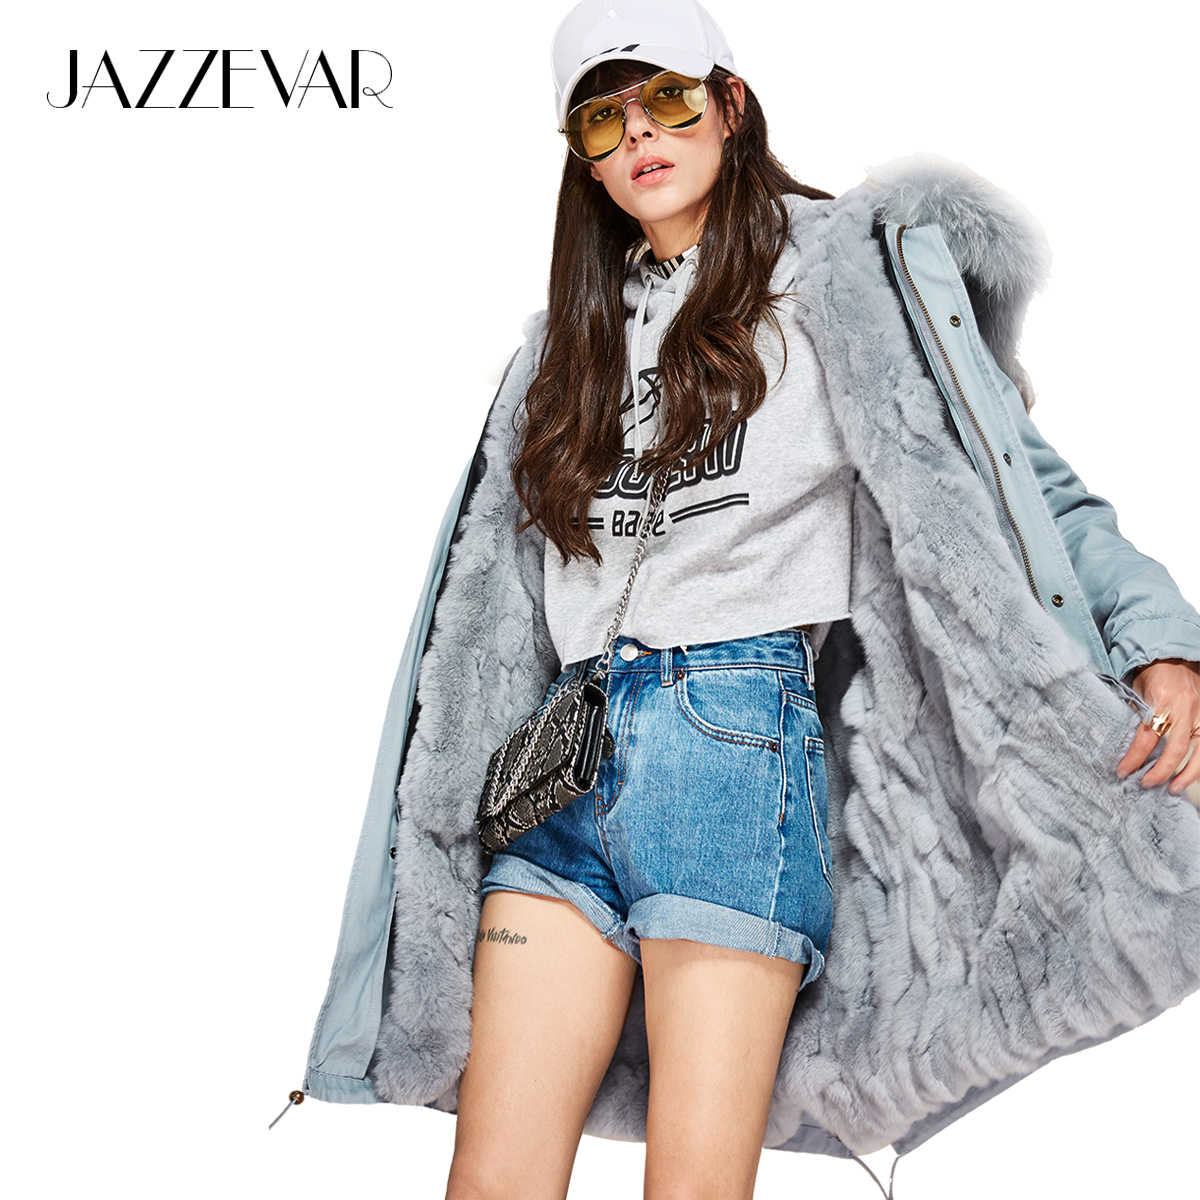 JAZZEVAR 2019 New women Large raccoon fur collar parka Midi hooded Military coat outwear rabbit fur lining winter jacket